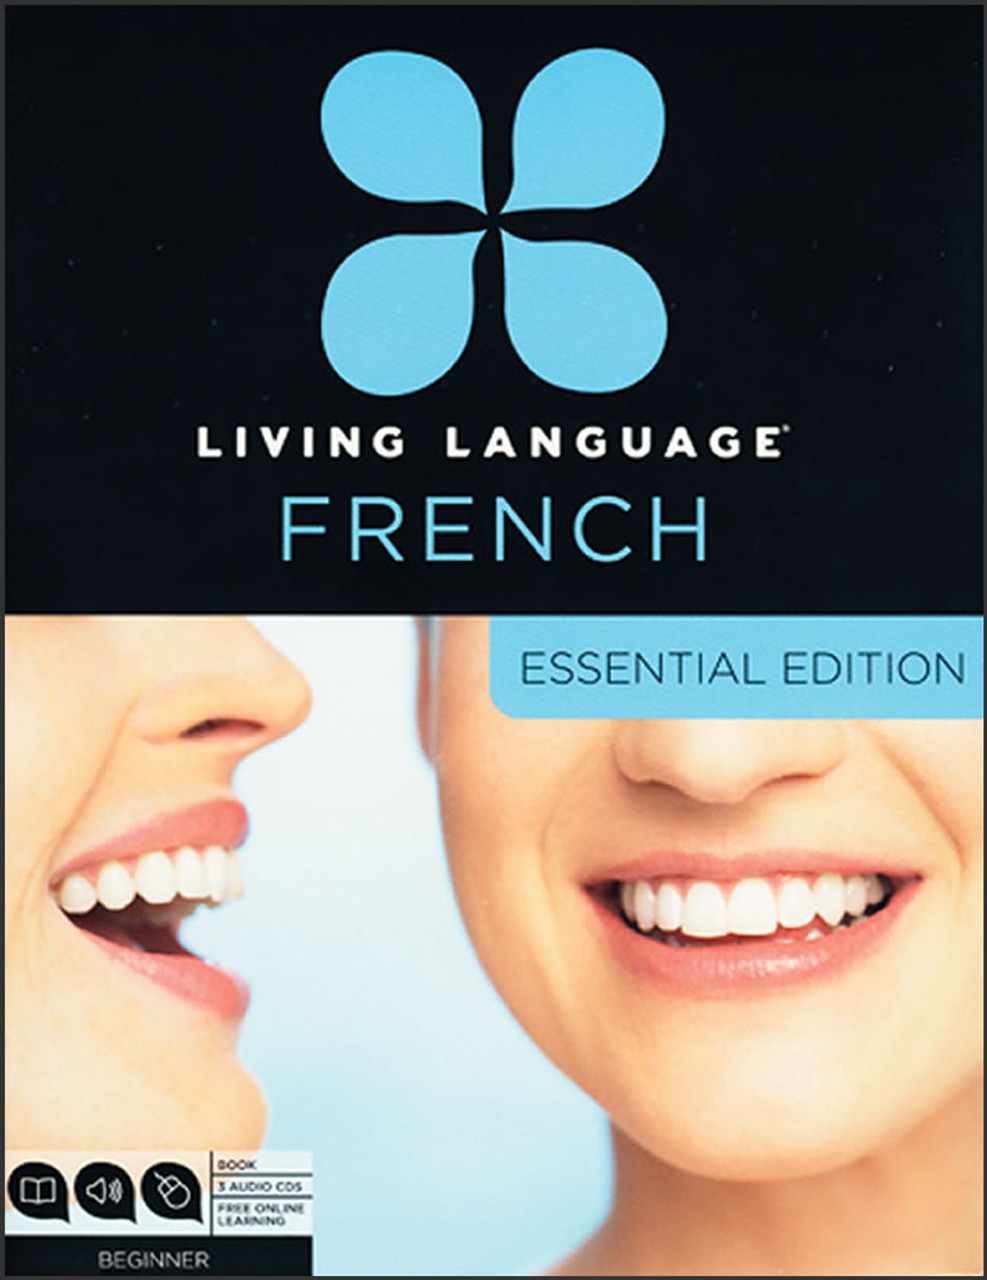 Living Language French: Essential Edition